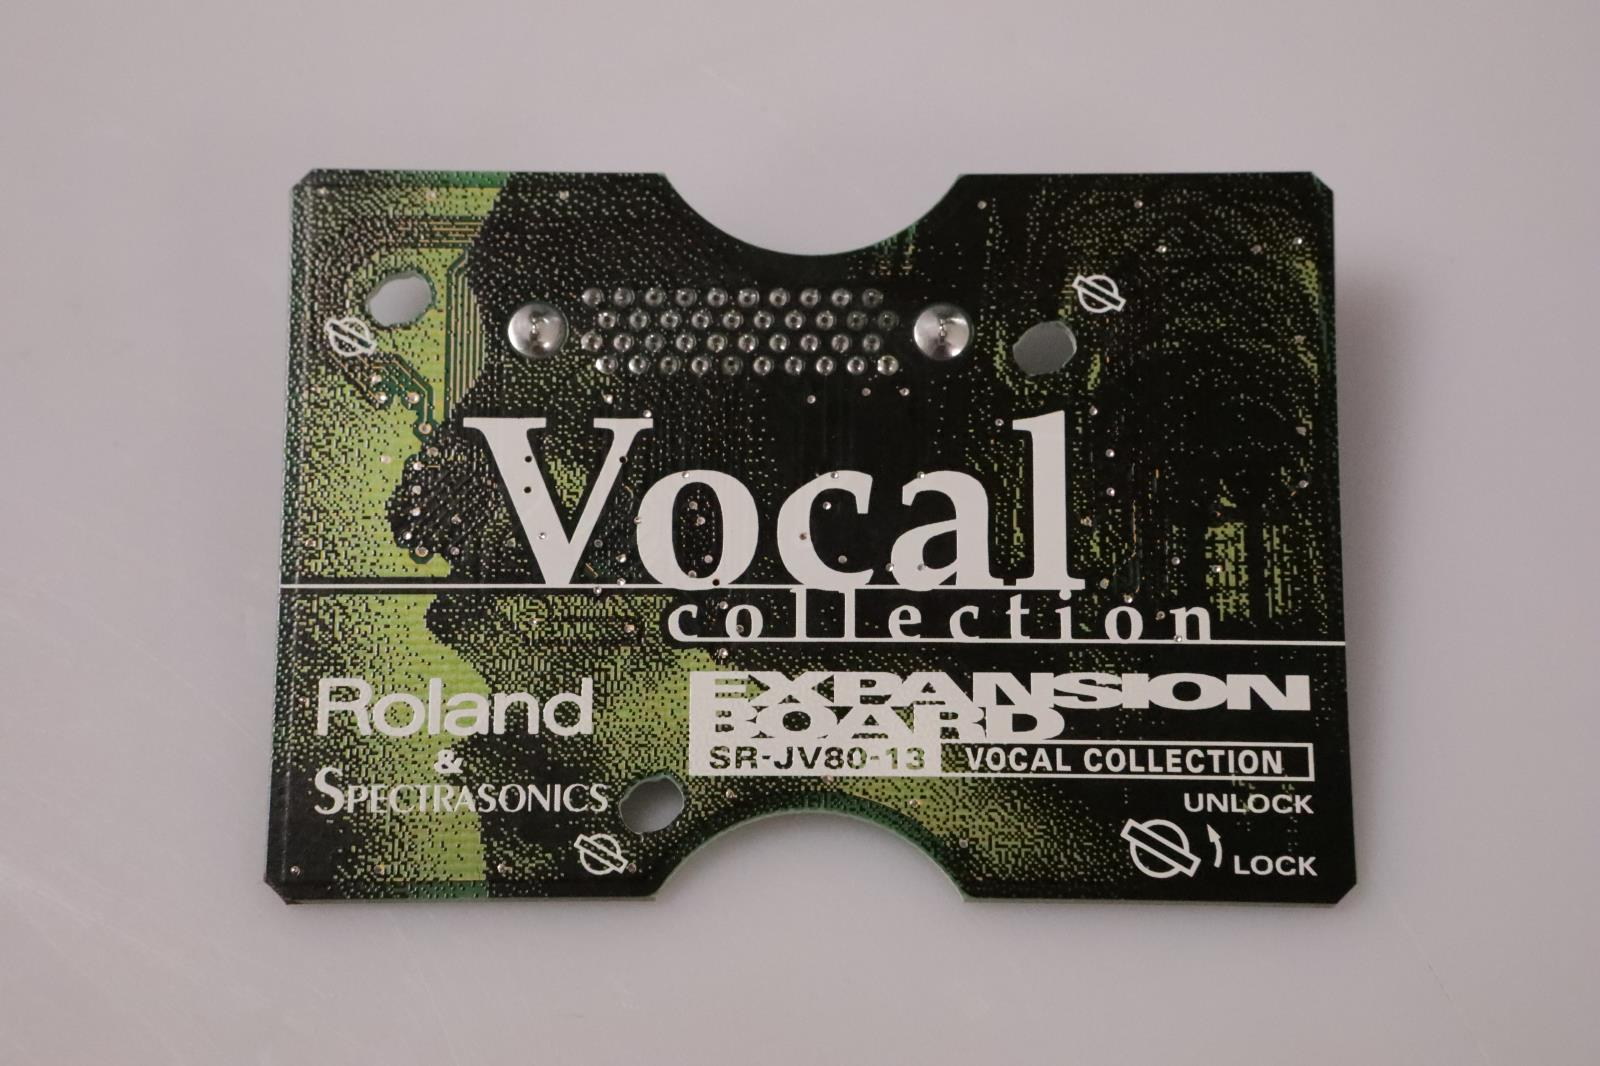 Roland SR-JV80-13 Vocal Collection Expansion Board Sound Card SRJV8013 #37020